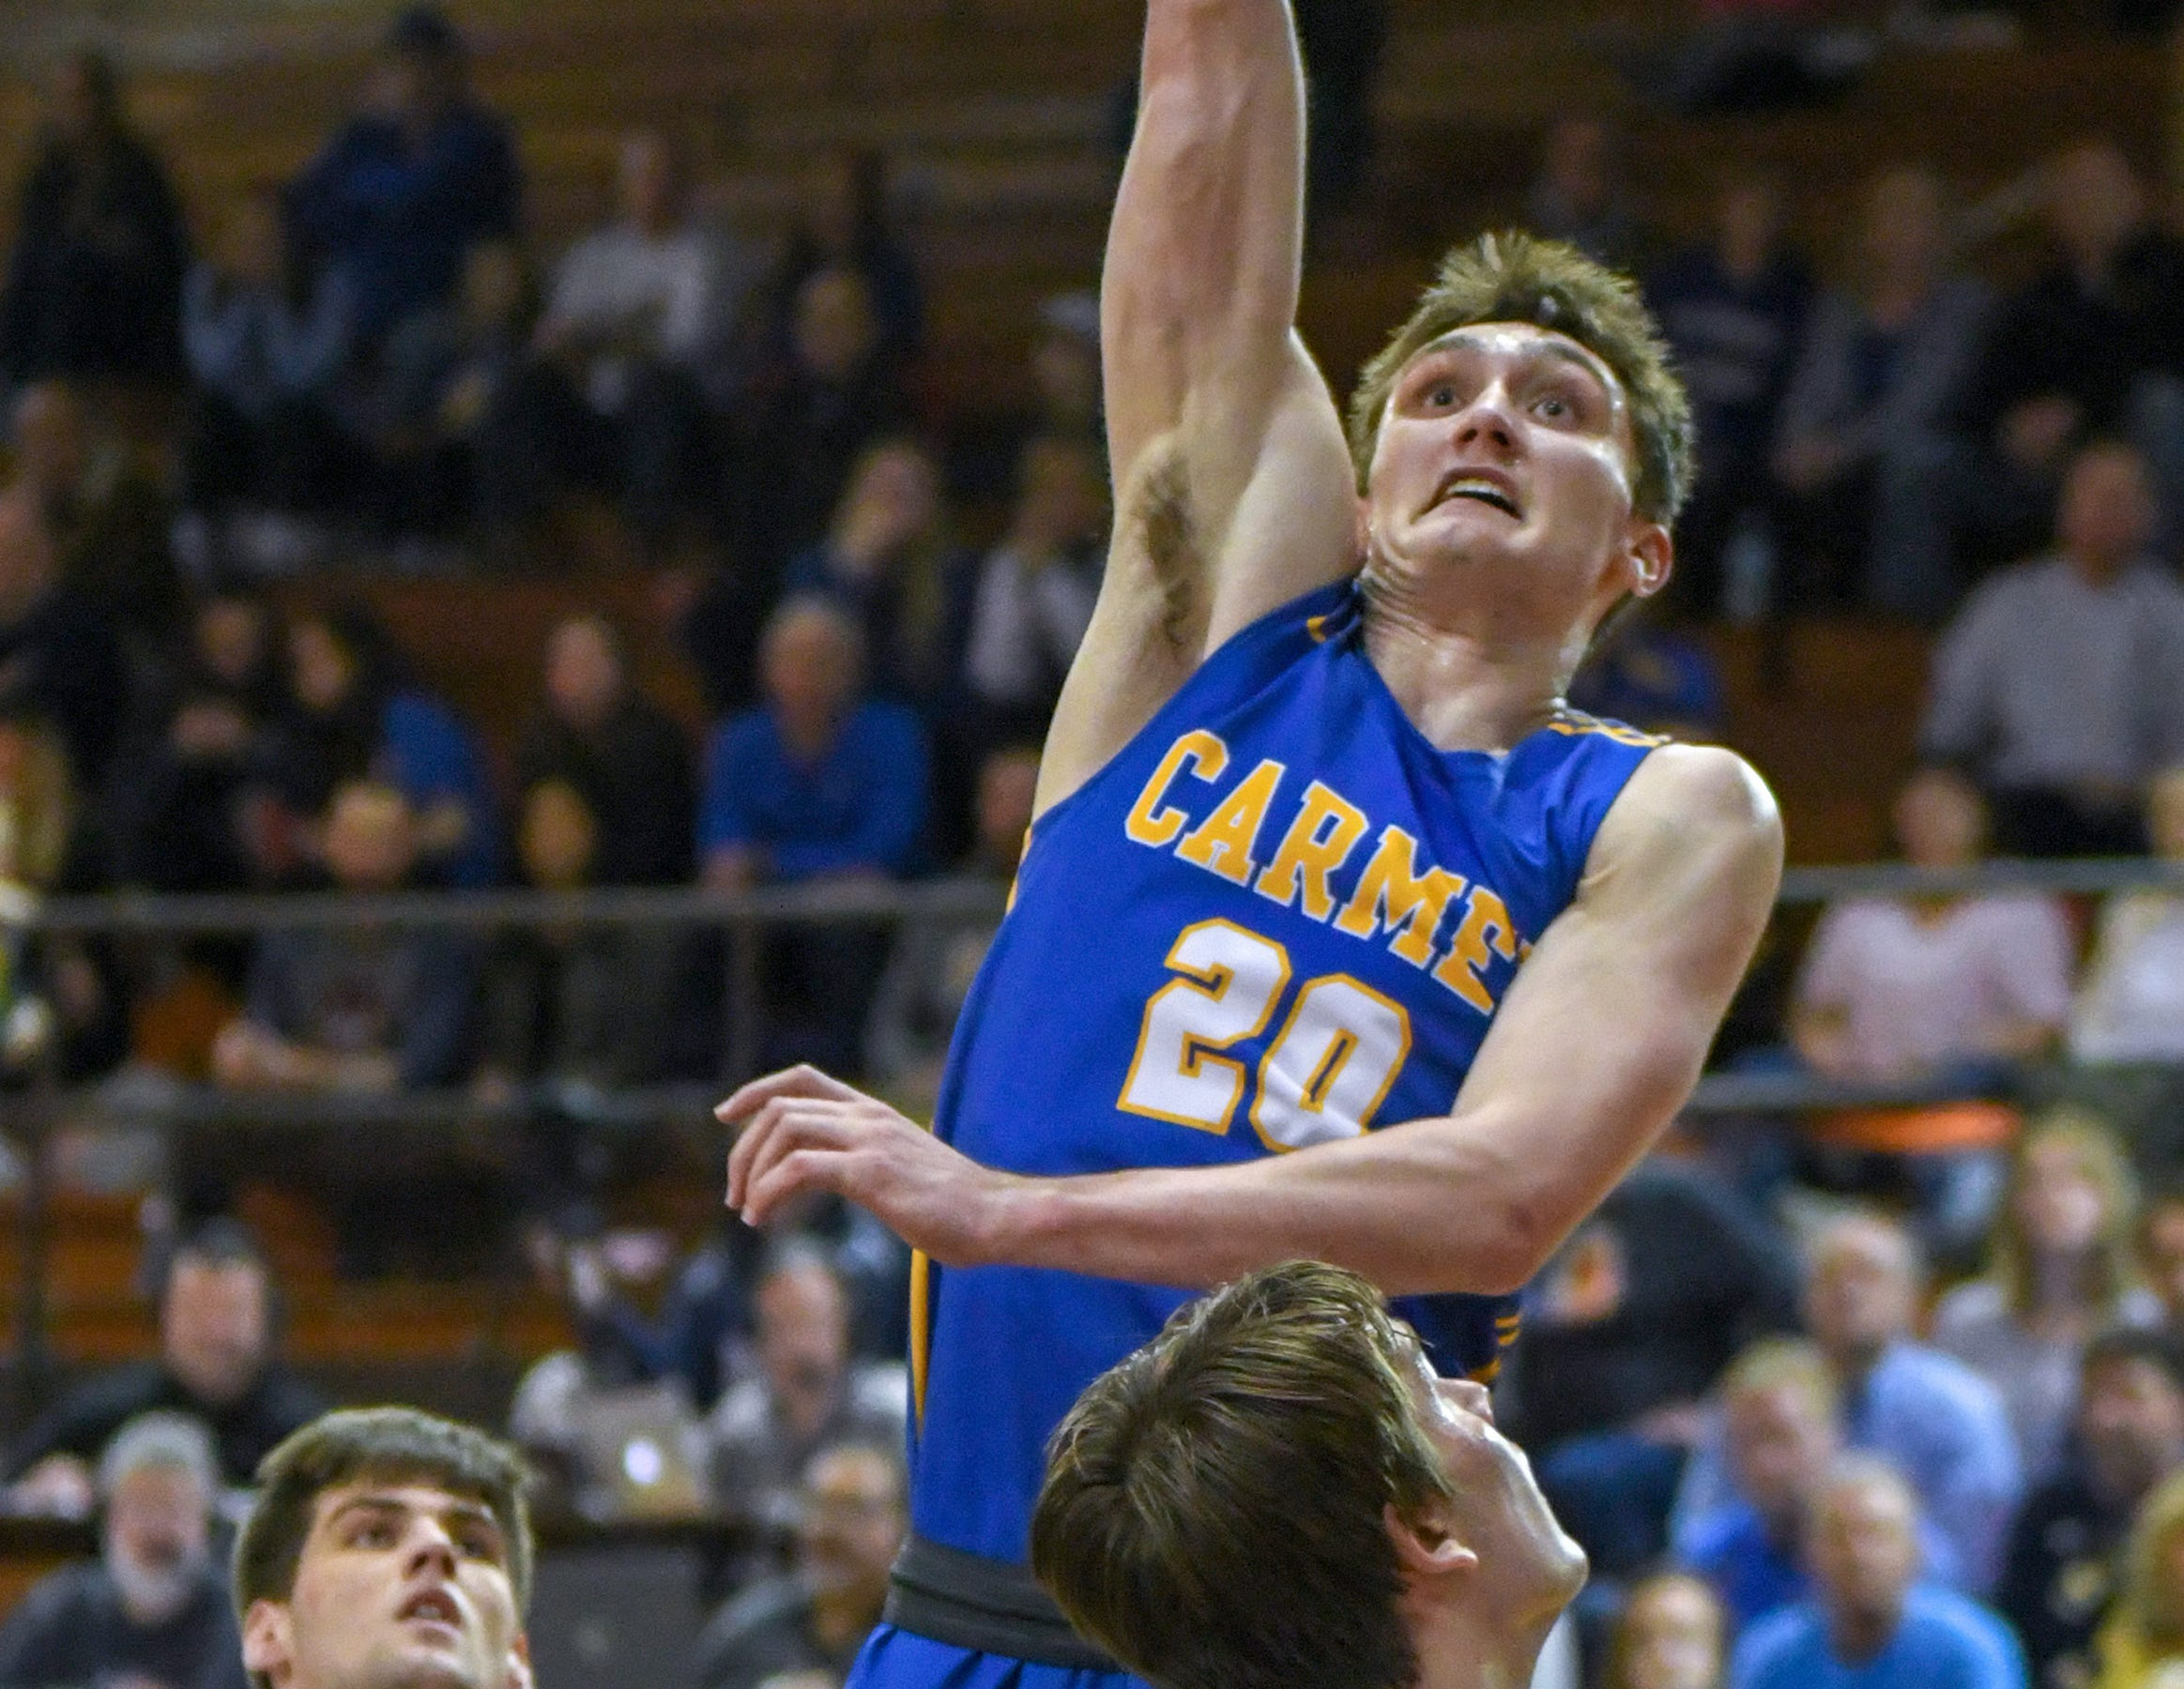 Carmel's Andrew Owens scores during his teams 71-42 win over Penn High School in Lafayette on Saturday March 16, 2019. Carmel moves on to the state finals after winning the 4A semi-state today.